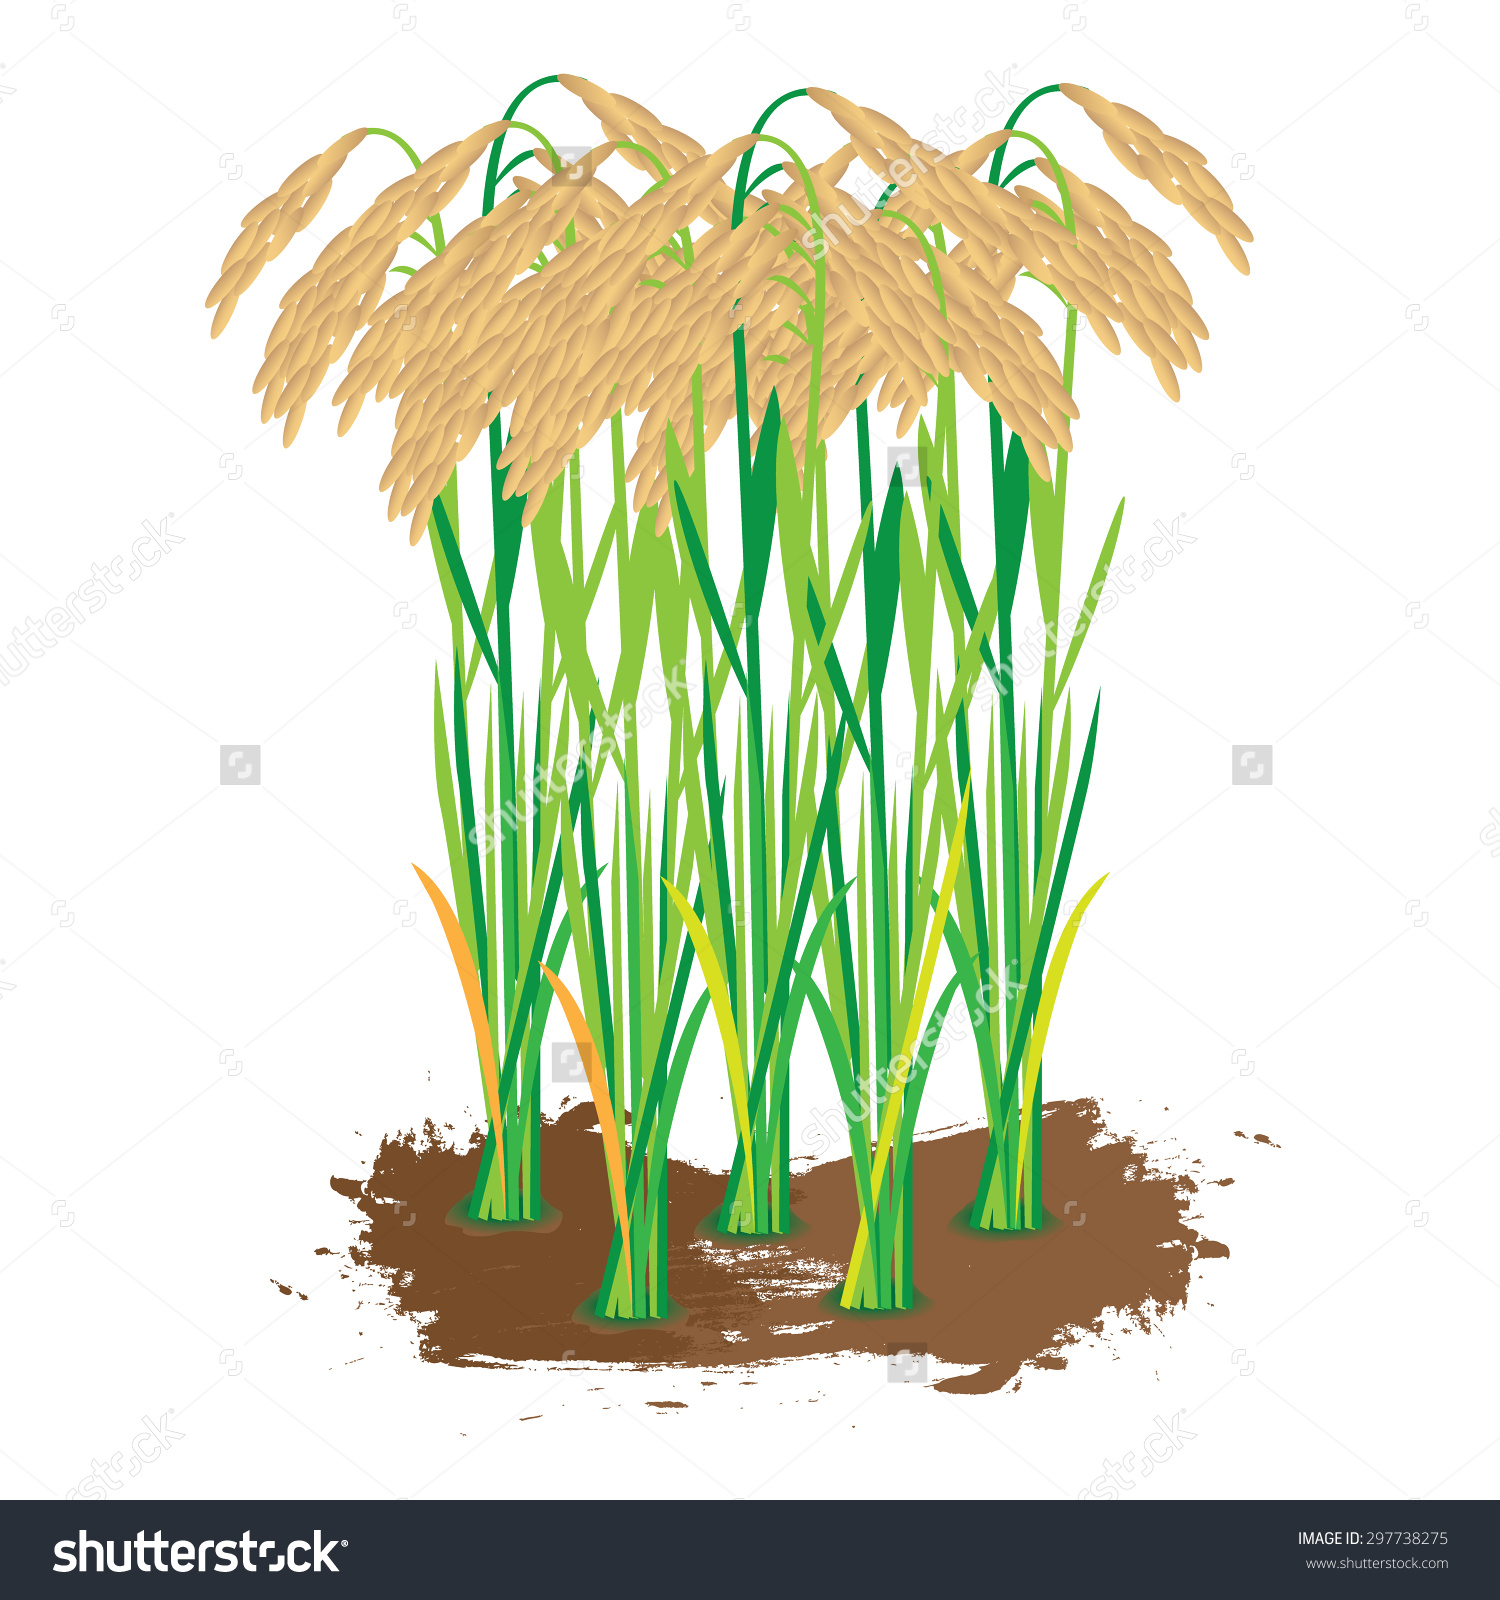 Clipart rice plant.